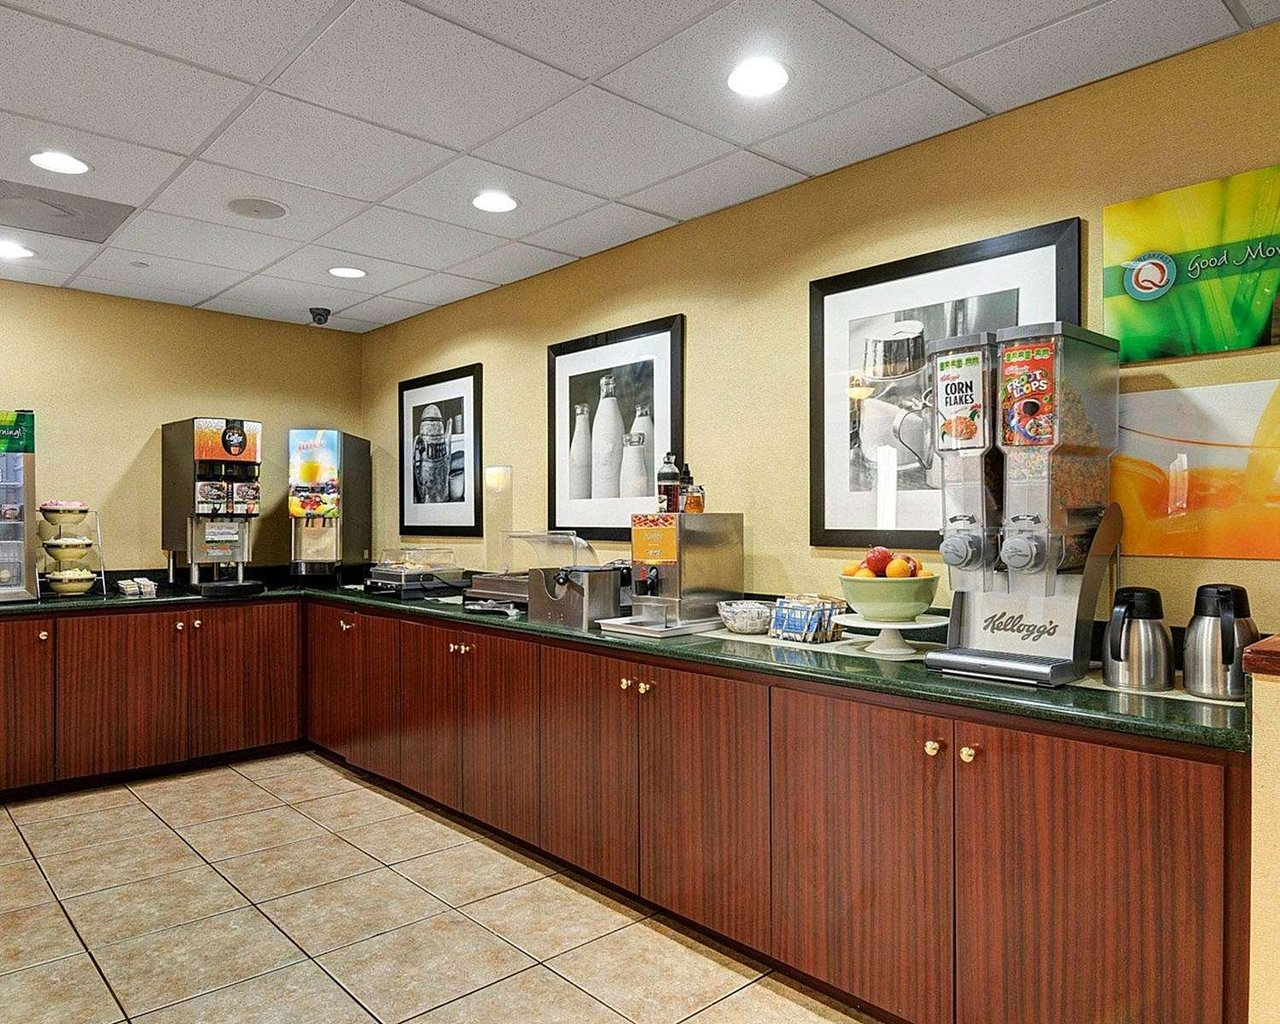 QUALITY INN & SUITES LITTLE ROCK - Updated 2018 Prices & Hotel ...